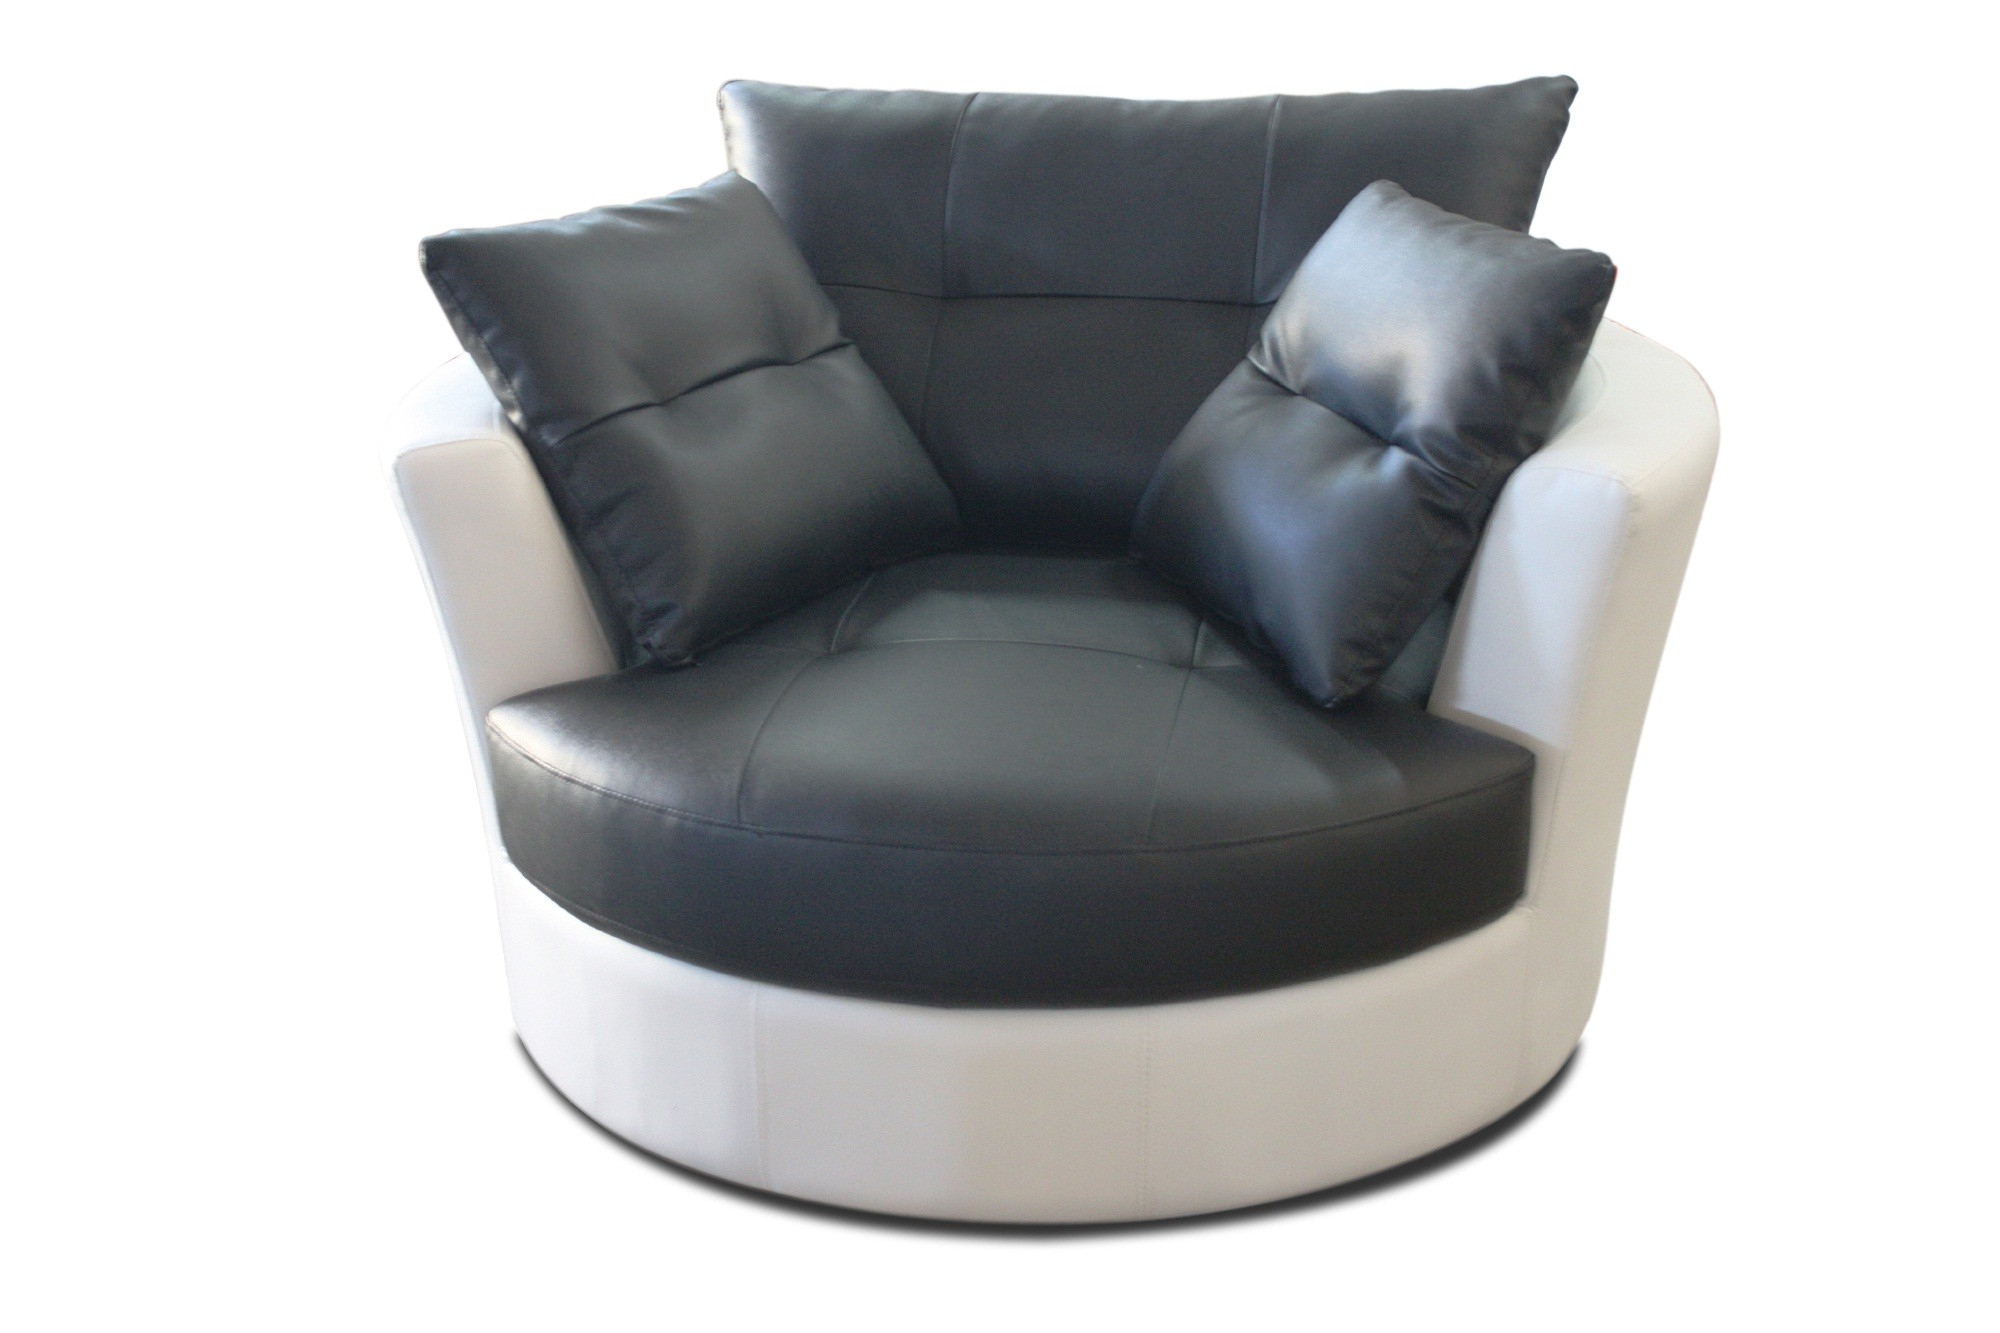 Black Couch Ottoman Reupholster Sofa Designs Clipgoo Contemporary Intended For Favorite Sofa With Swivel Chair (View 3 of 20)